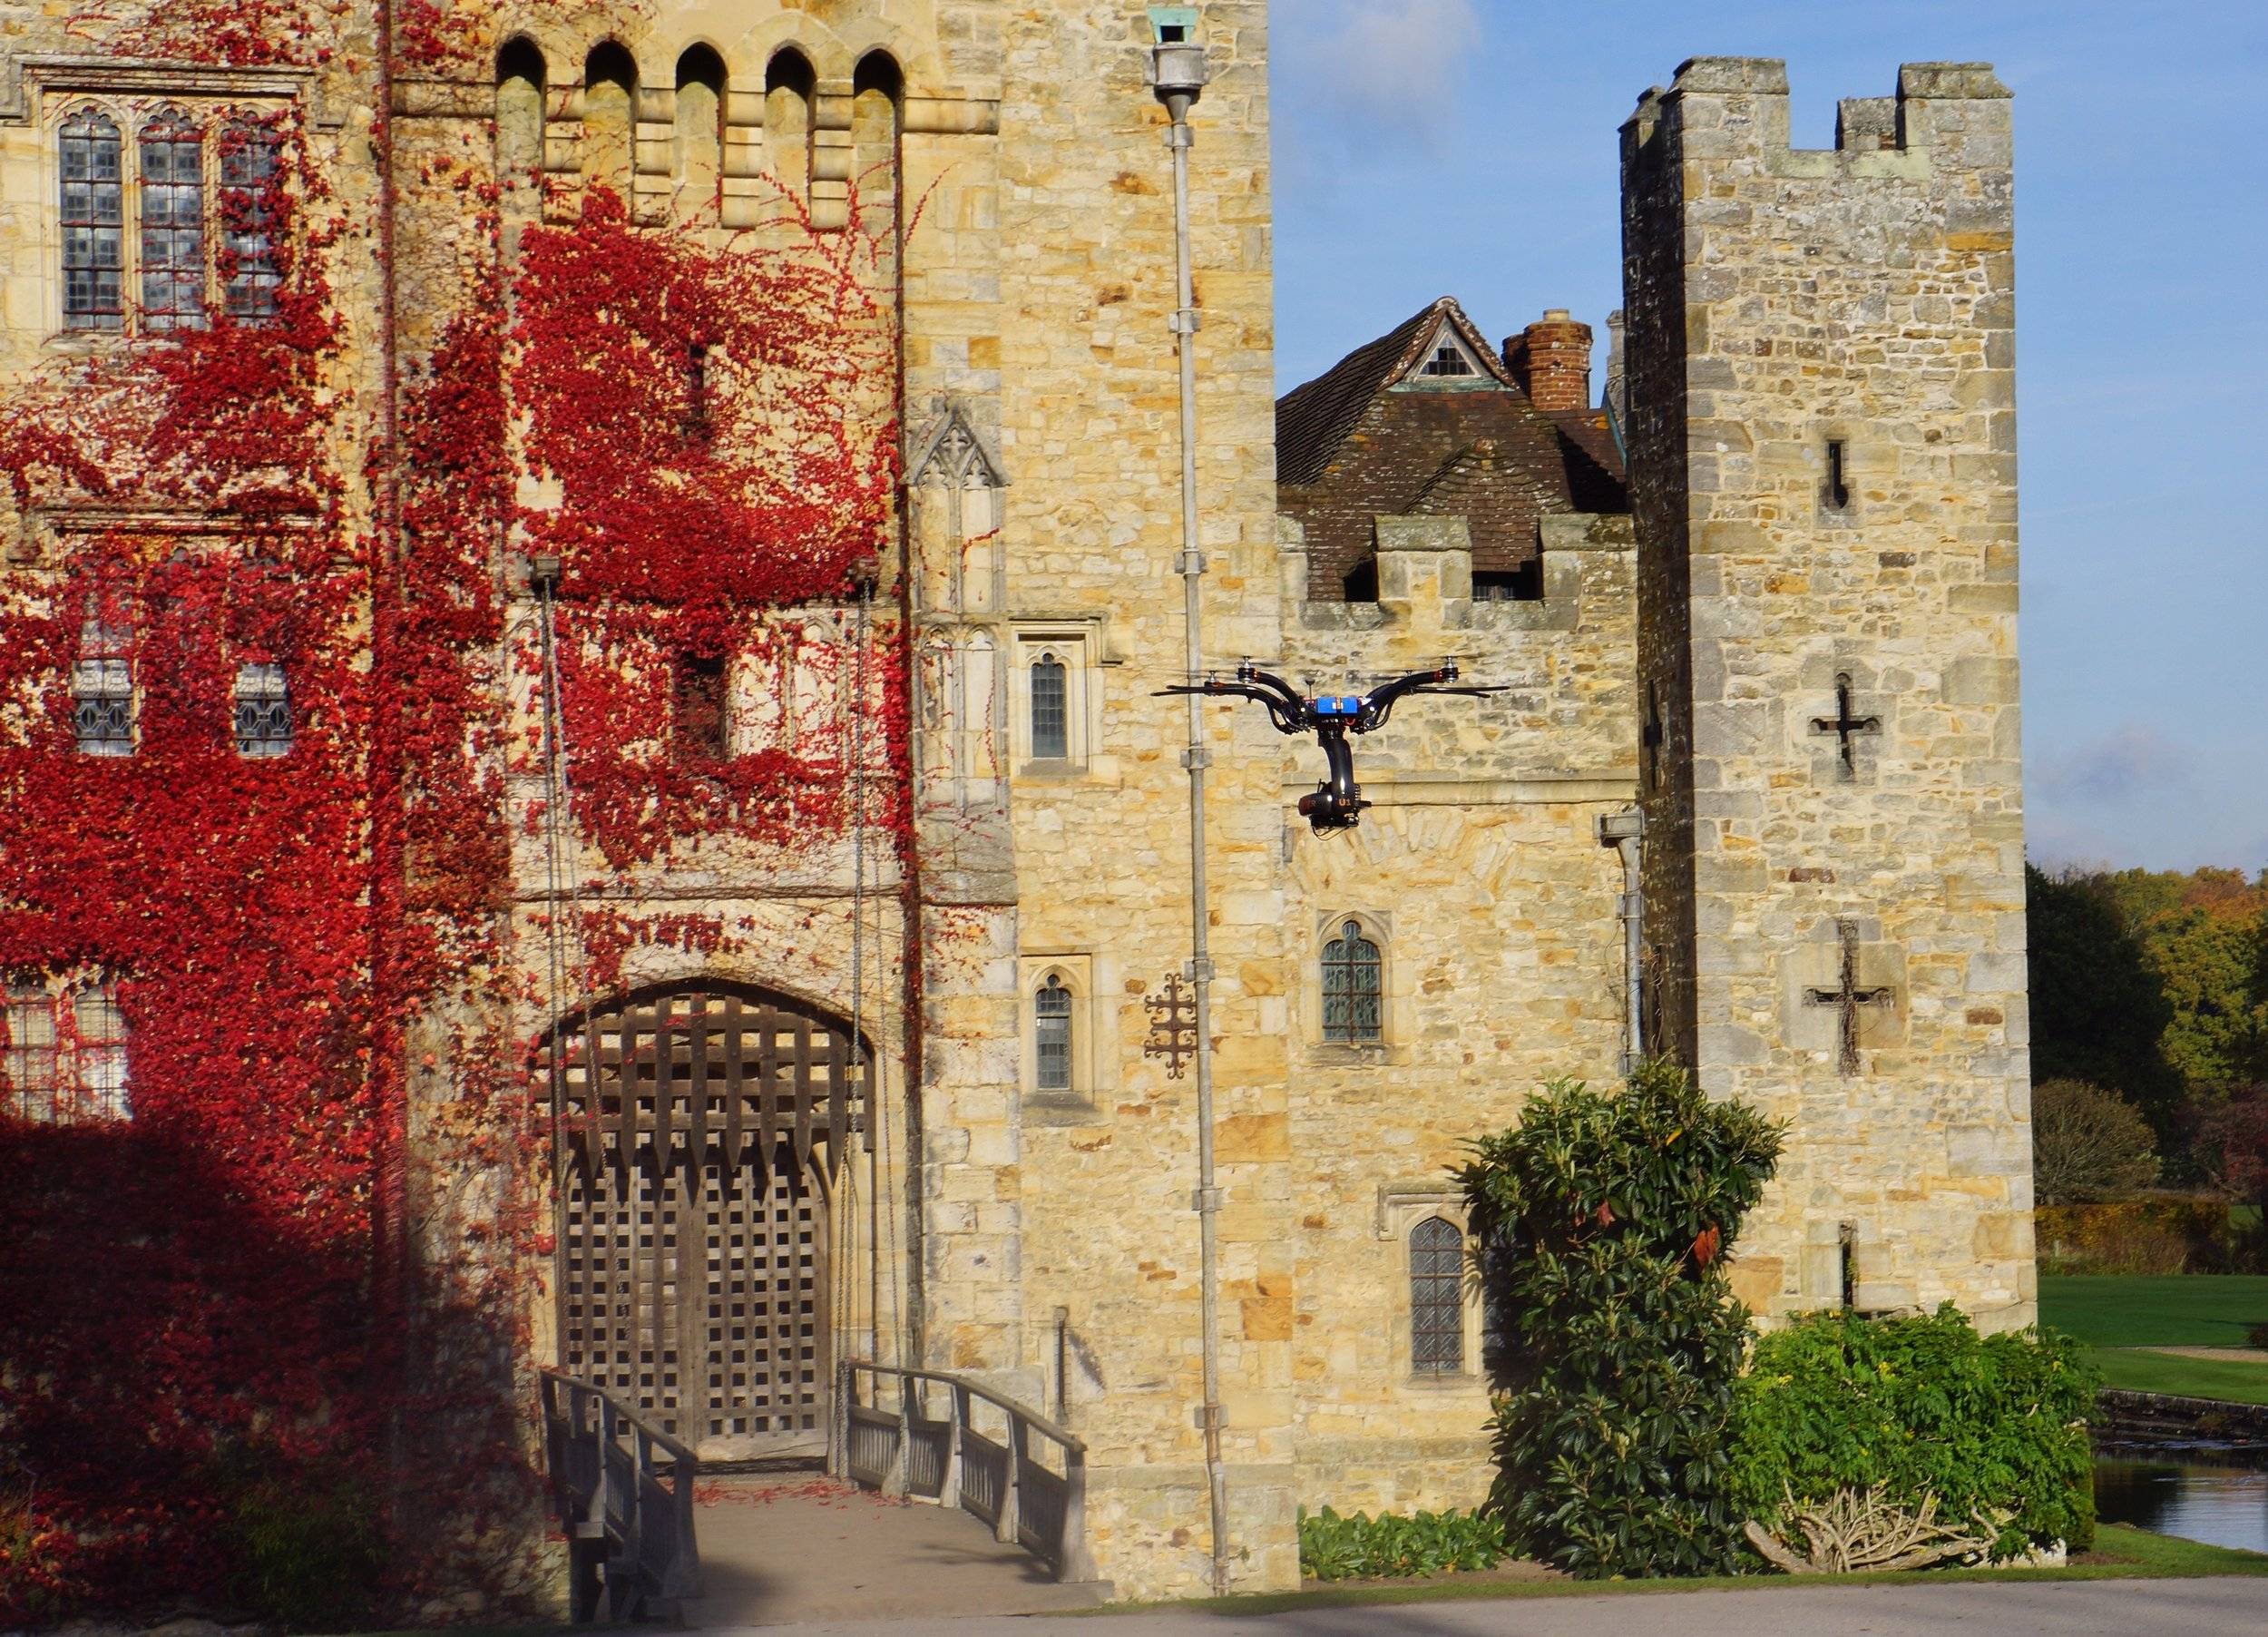 Drone shooting in 4K at Hever Castle, Kent